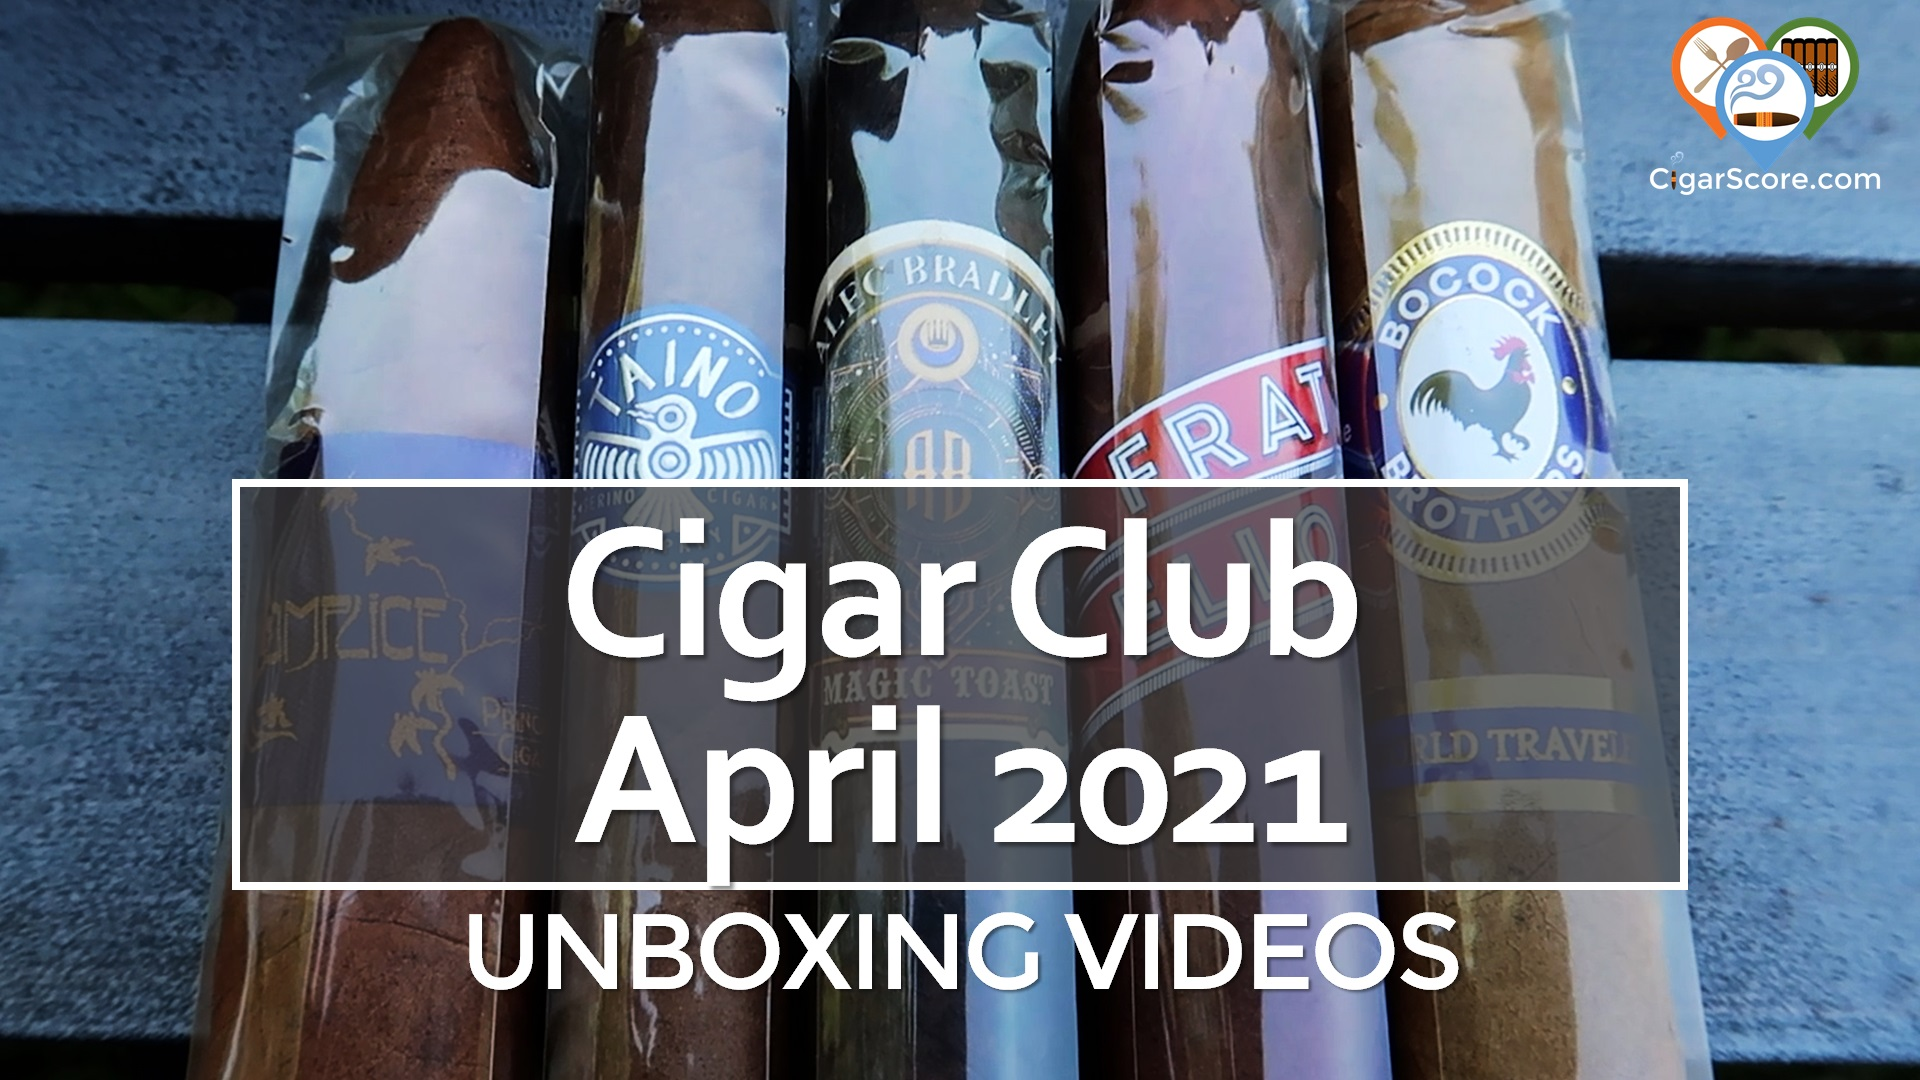 UNBOXING – CigarClub APRIL 2021